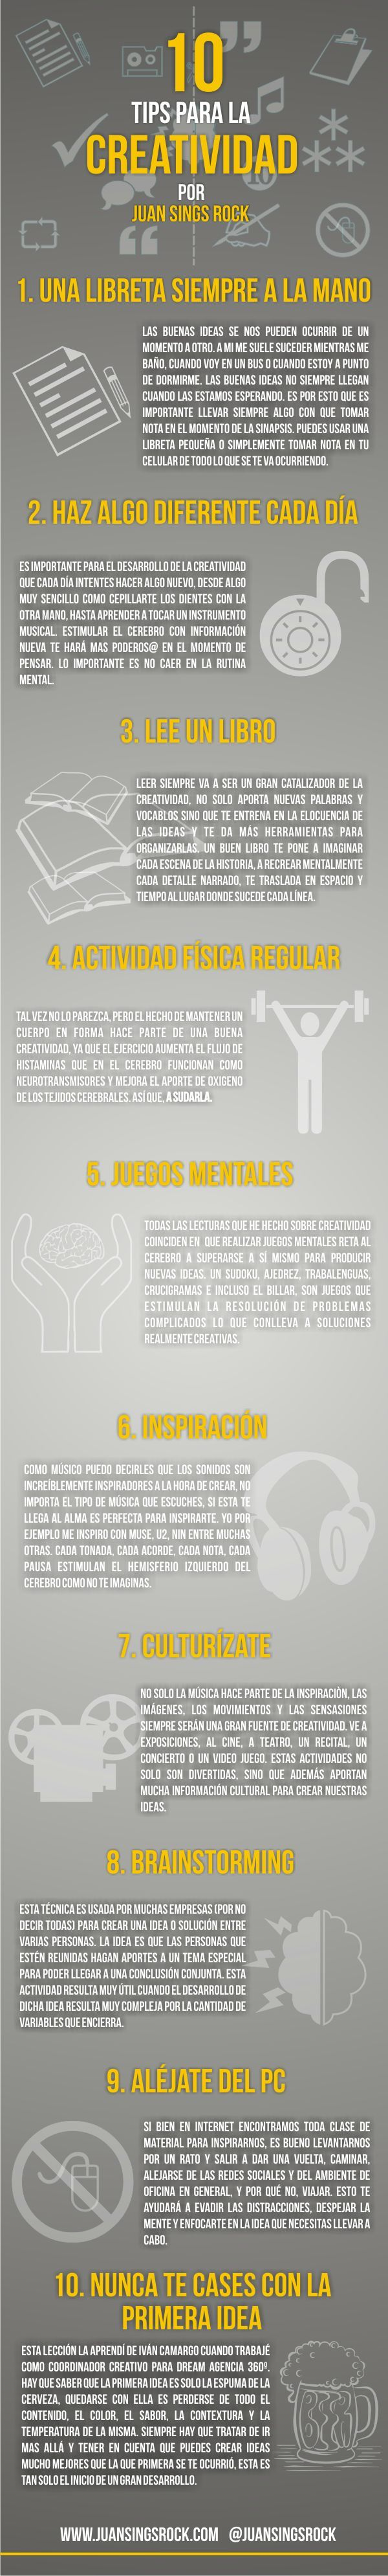 Algunas ideas para ser creativo | #readytocreate